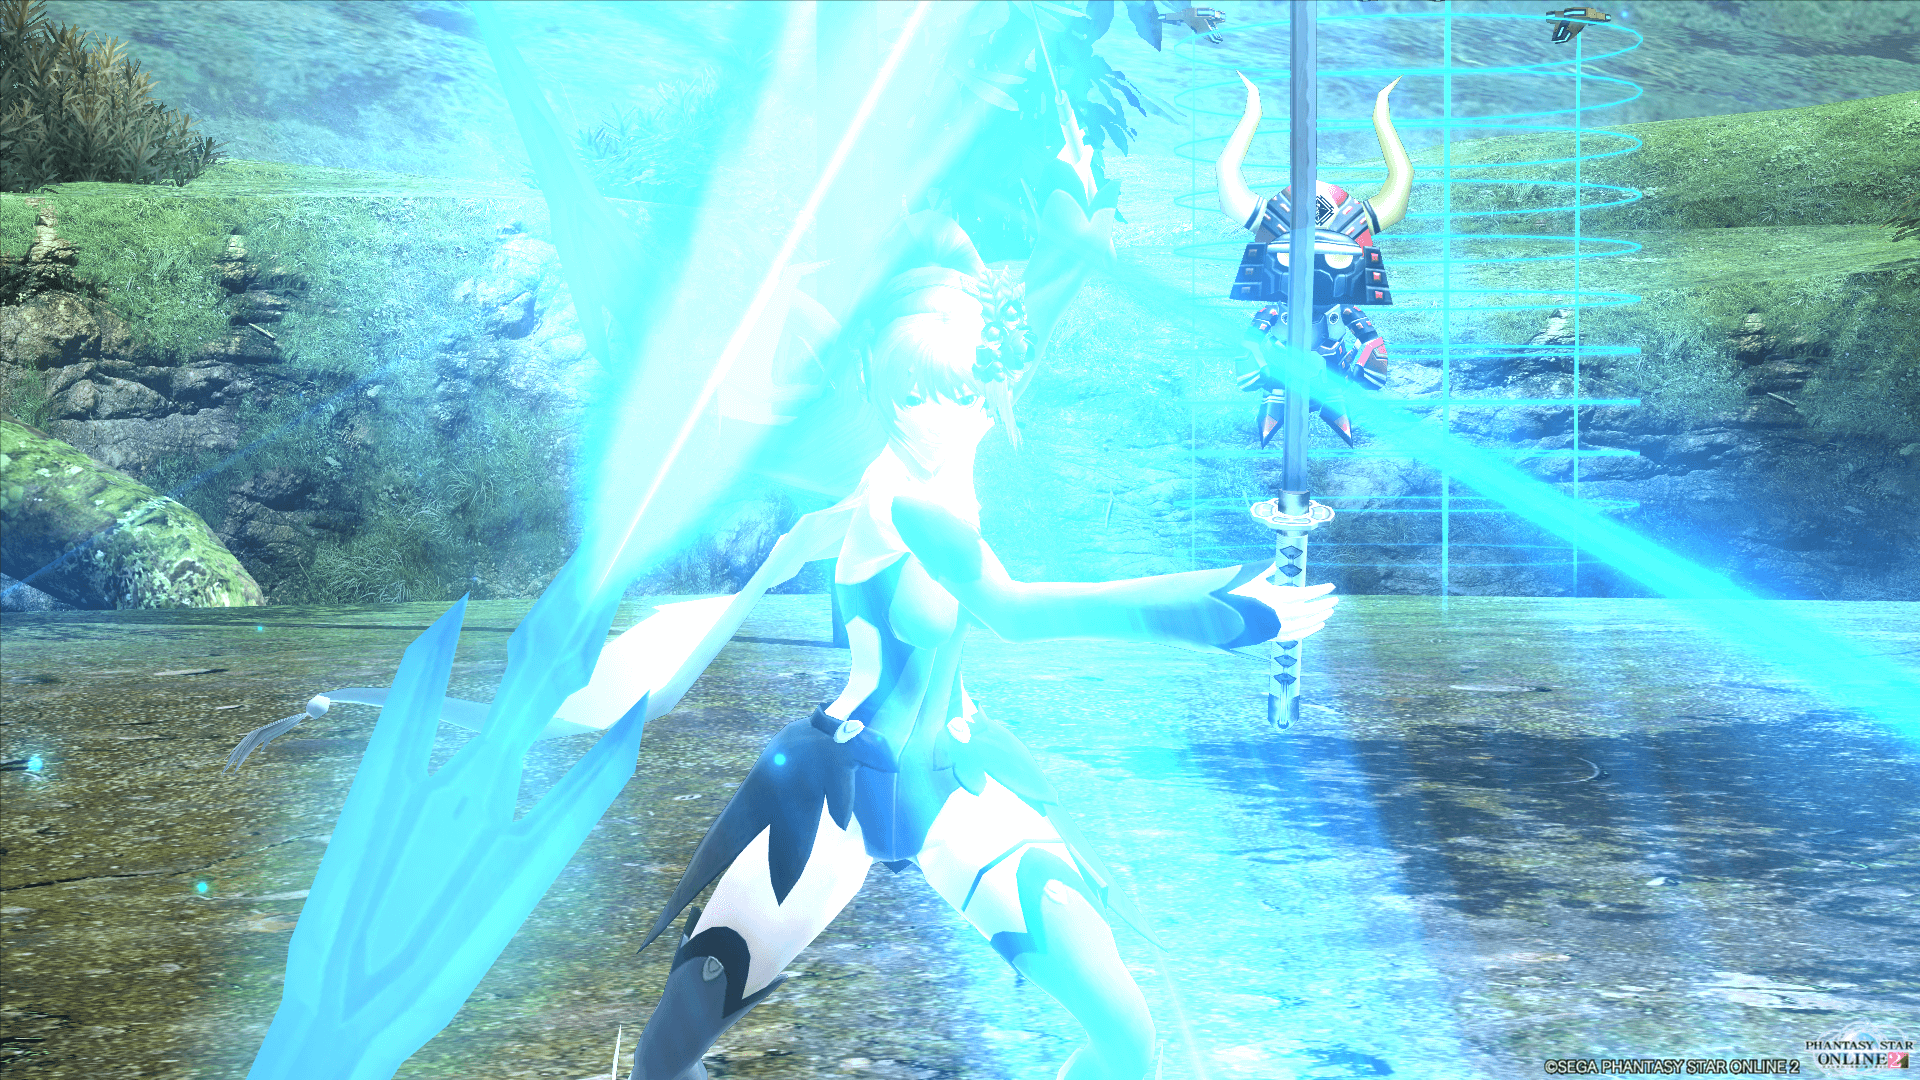 pso20150625_132452_018.png